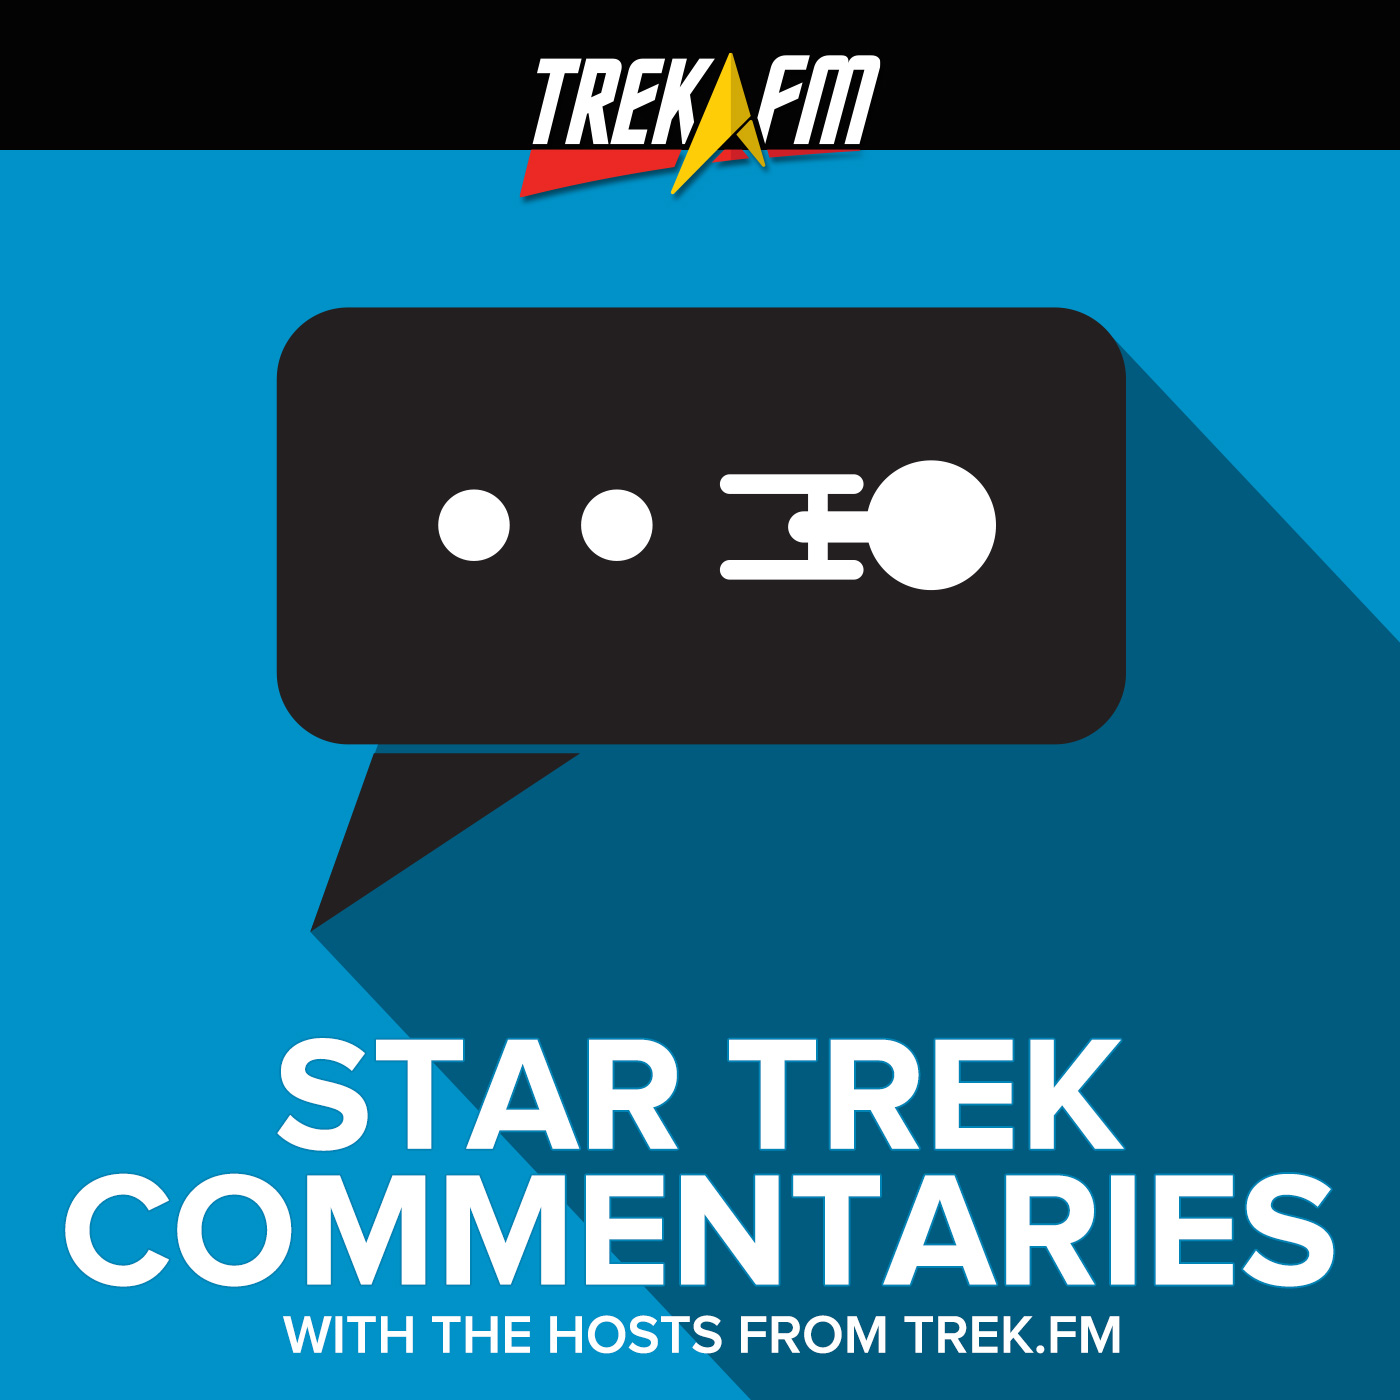 Star Trek Commentary Tracks: A Trek.fm Podcasts Collection